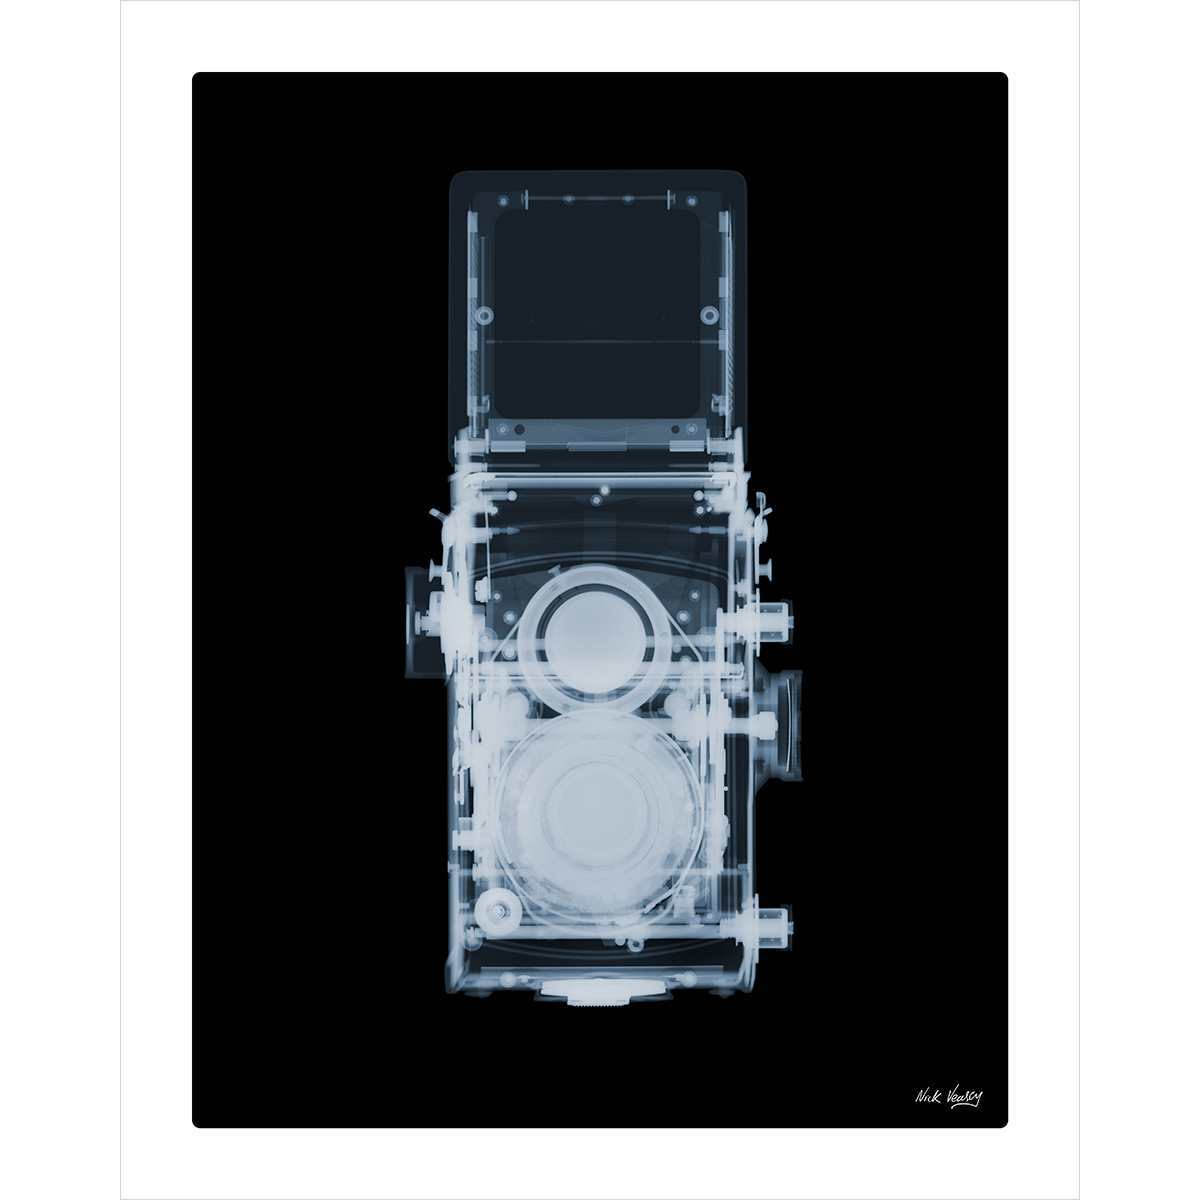 X-ray print of 1960s TLR camera by Nick Veasey